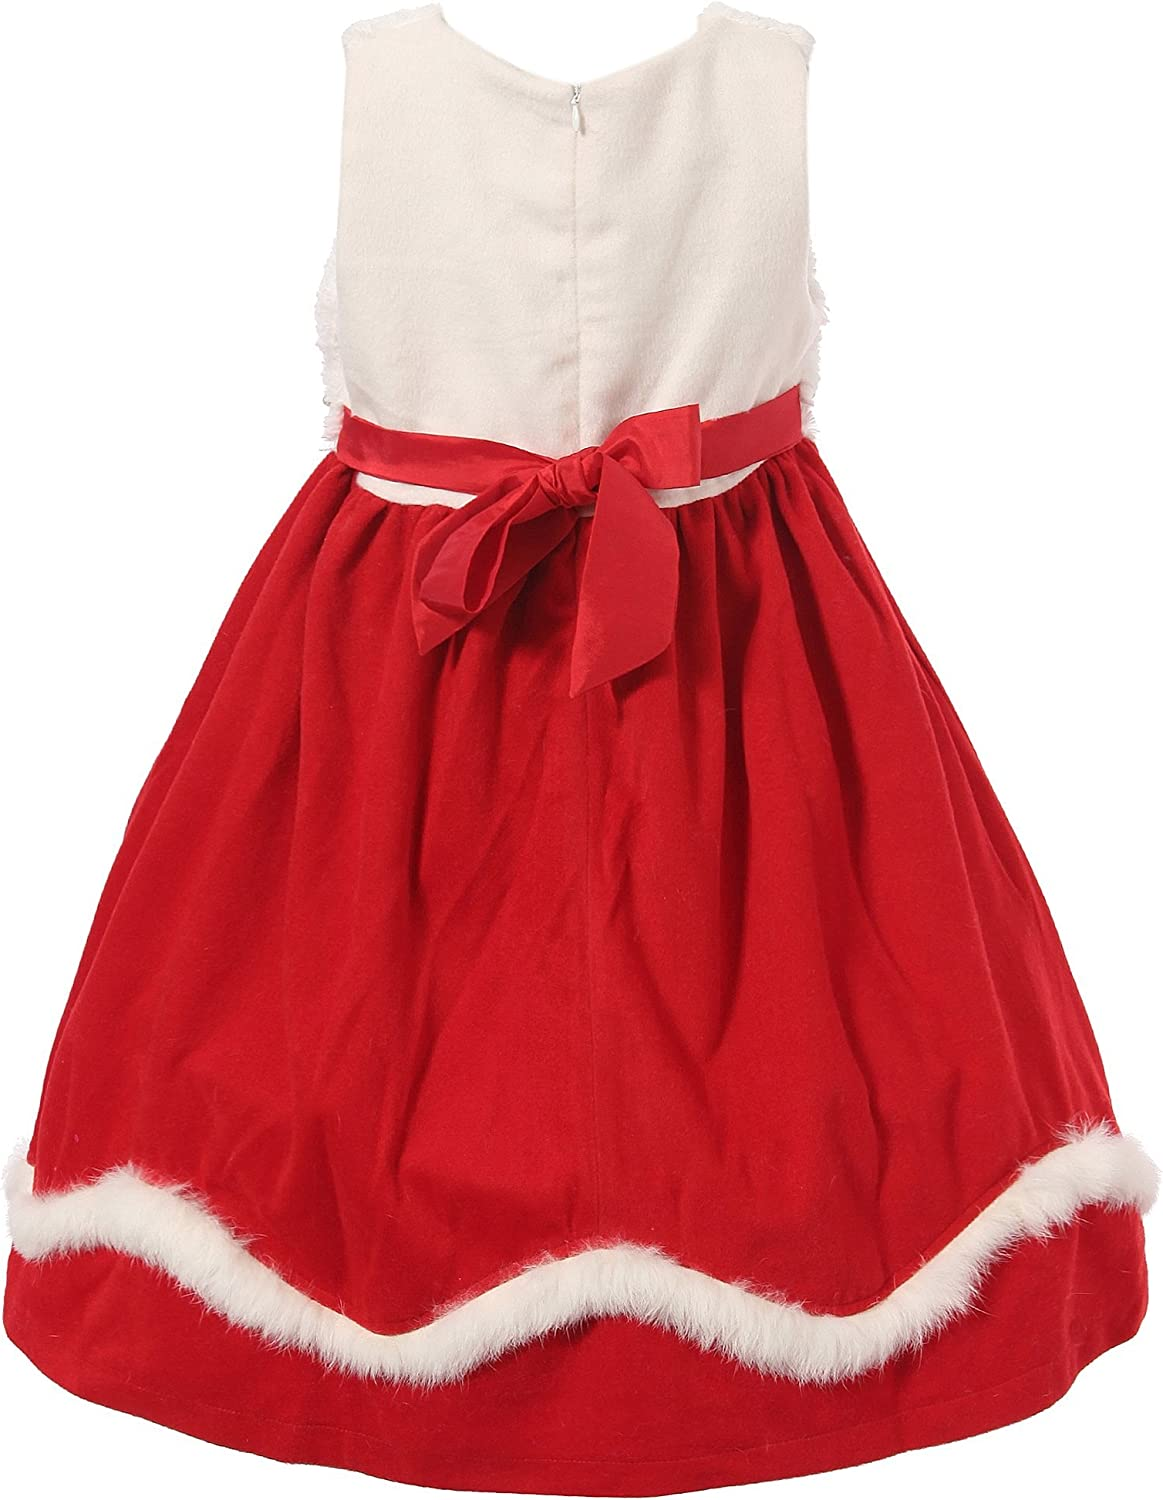 Richie House Girls' Fahion Dress for All Occasions RH1464